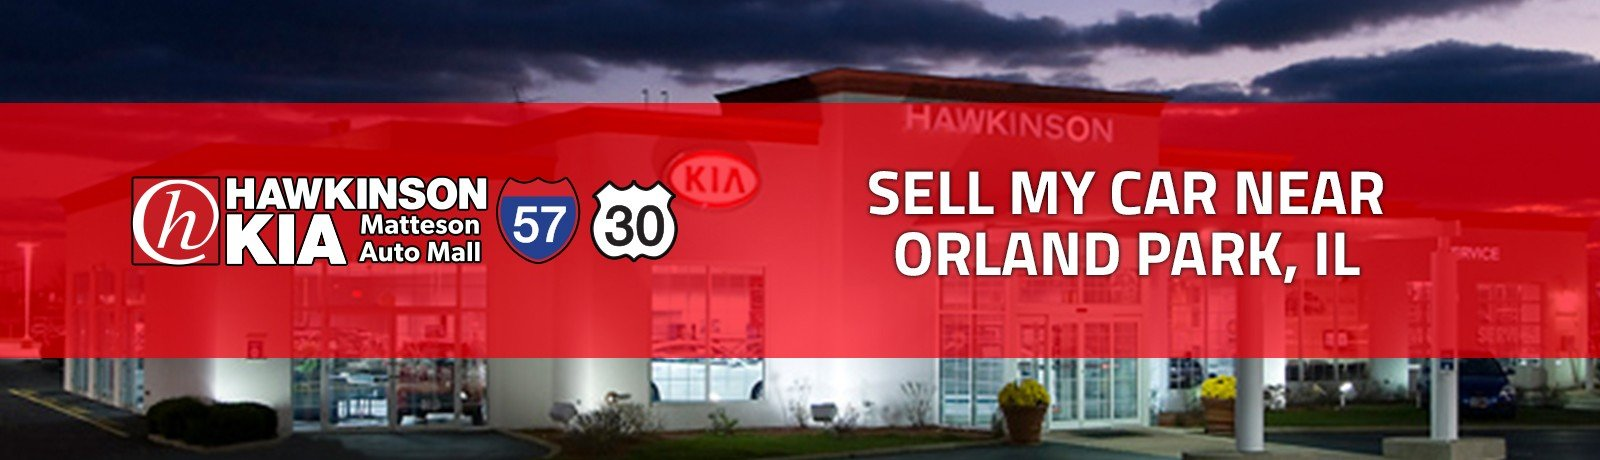 Sell Your Car In Orland Park